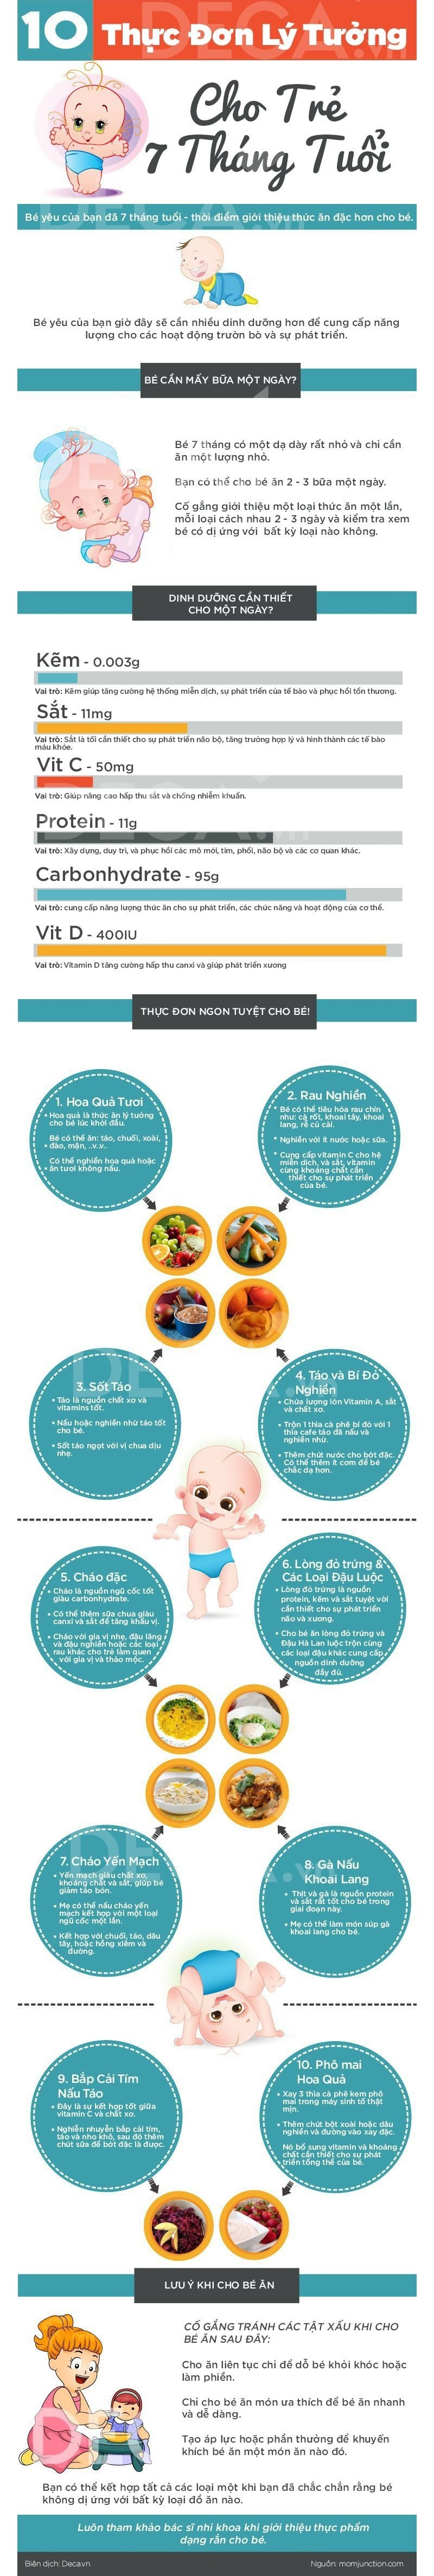 infographic_thuc_don_cho_be_7_thang_tuoi